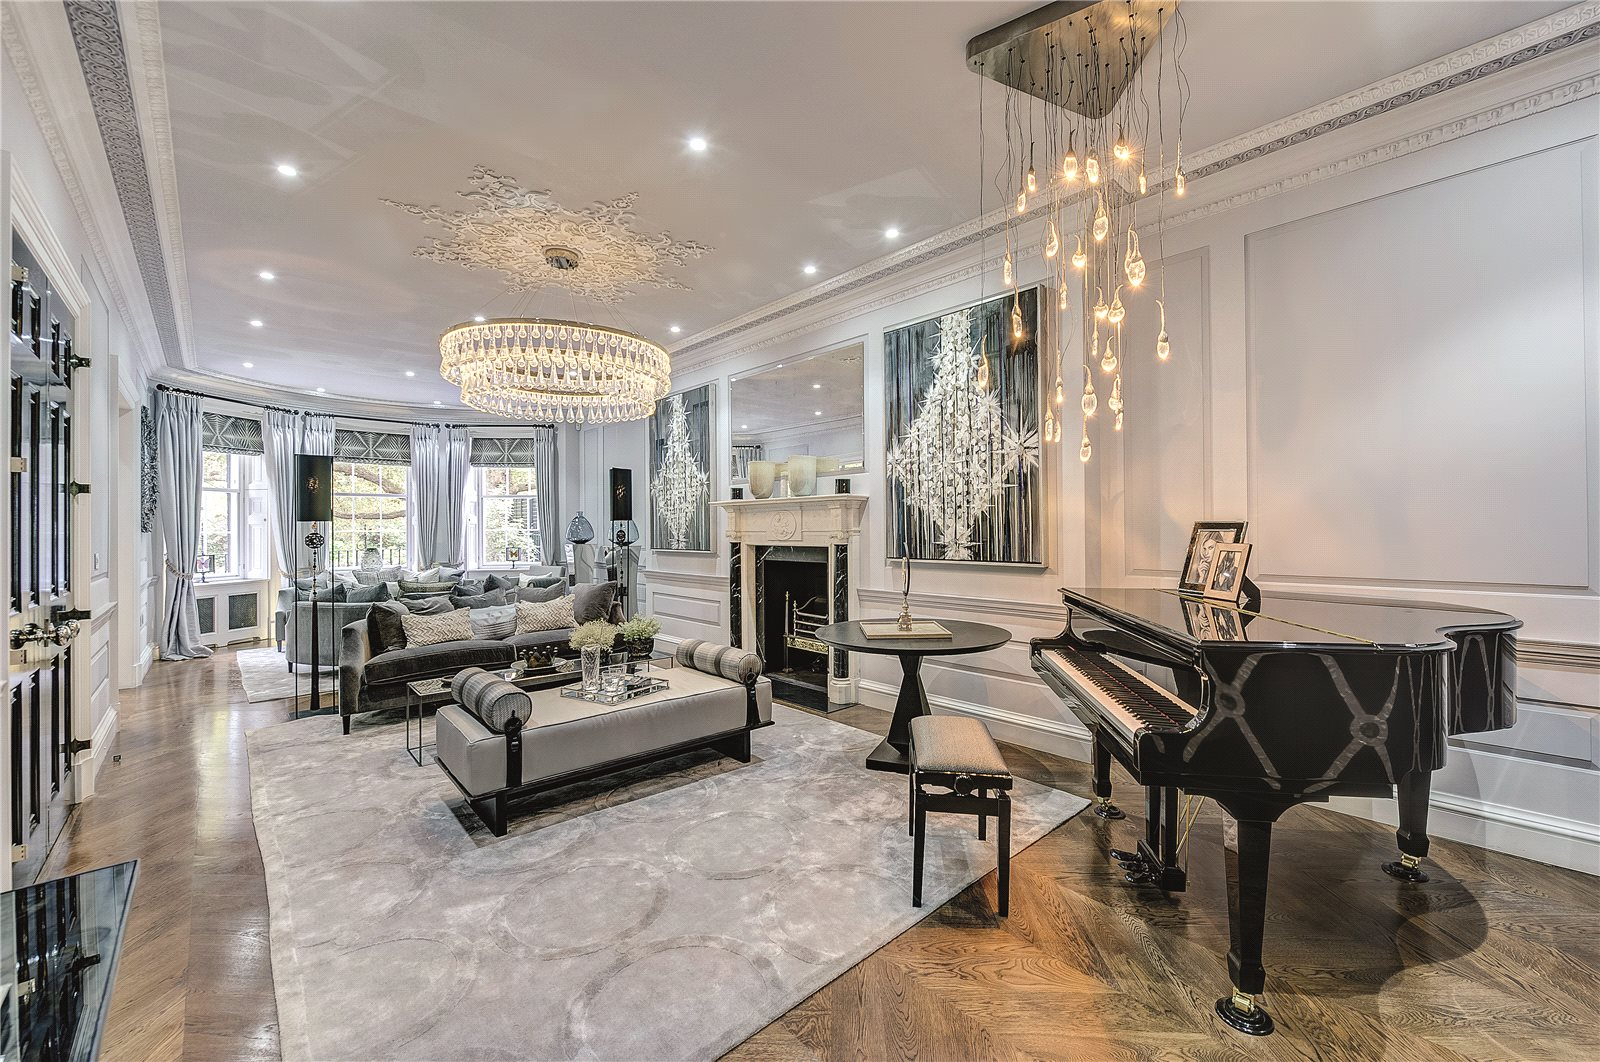 This historic mansion in Queen Anne's Gate has been sensitively restored and refurbished in compliance with English Heritage Trust. The living room has several statement chandeliers and light fixtures that add a 21st-century sophistication to the original 18th-century architecture.